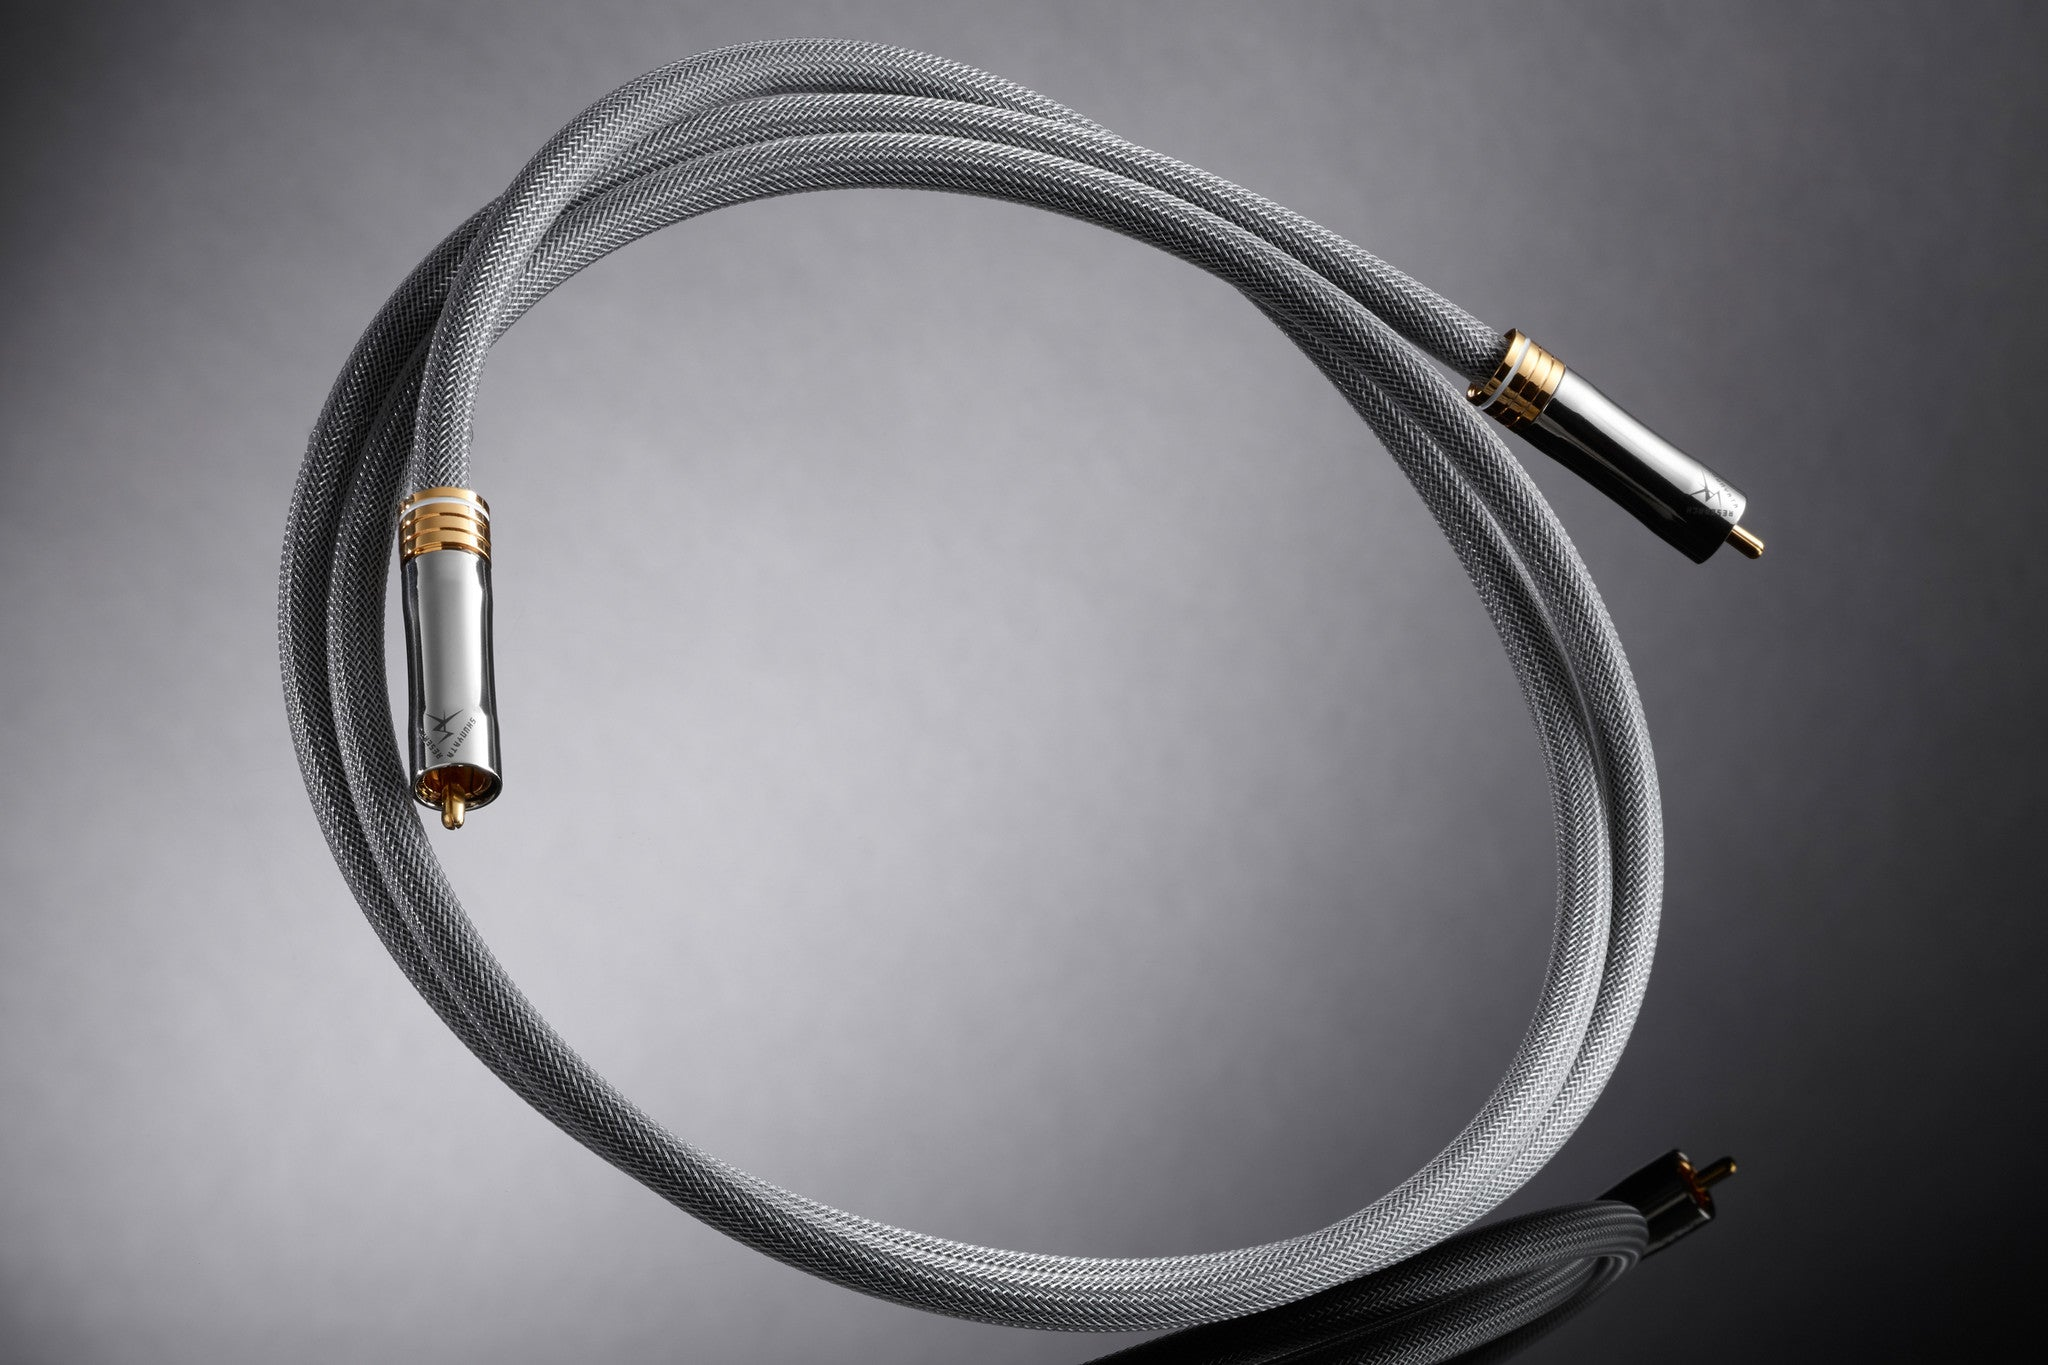 Shunyata Venom S/PIDF Digital Cable - EACH